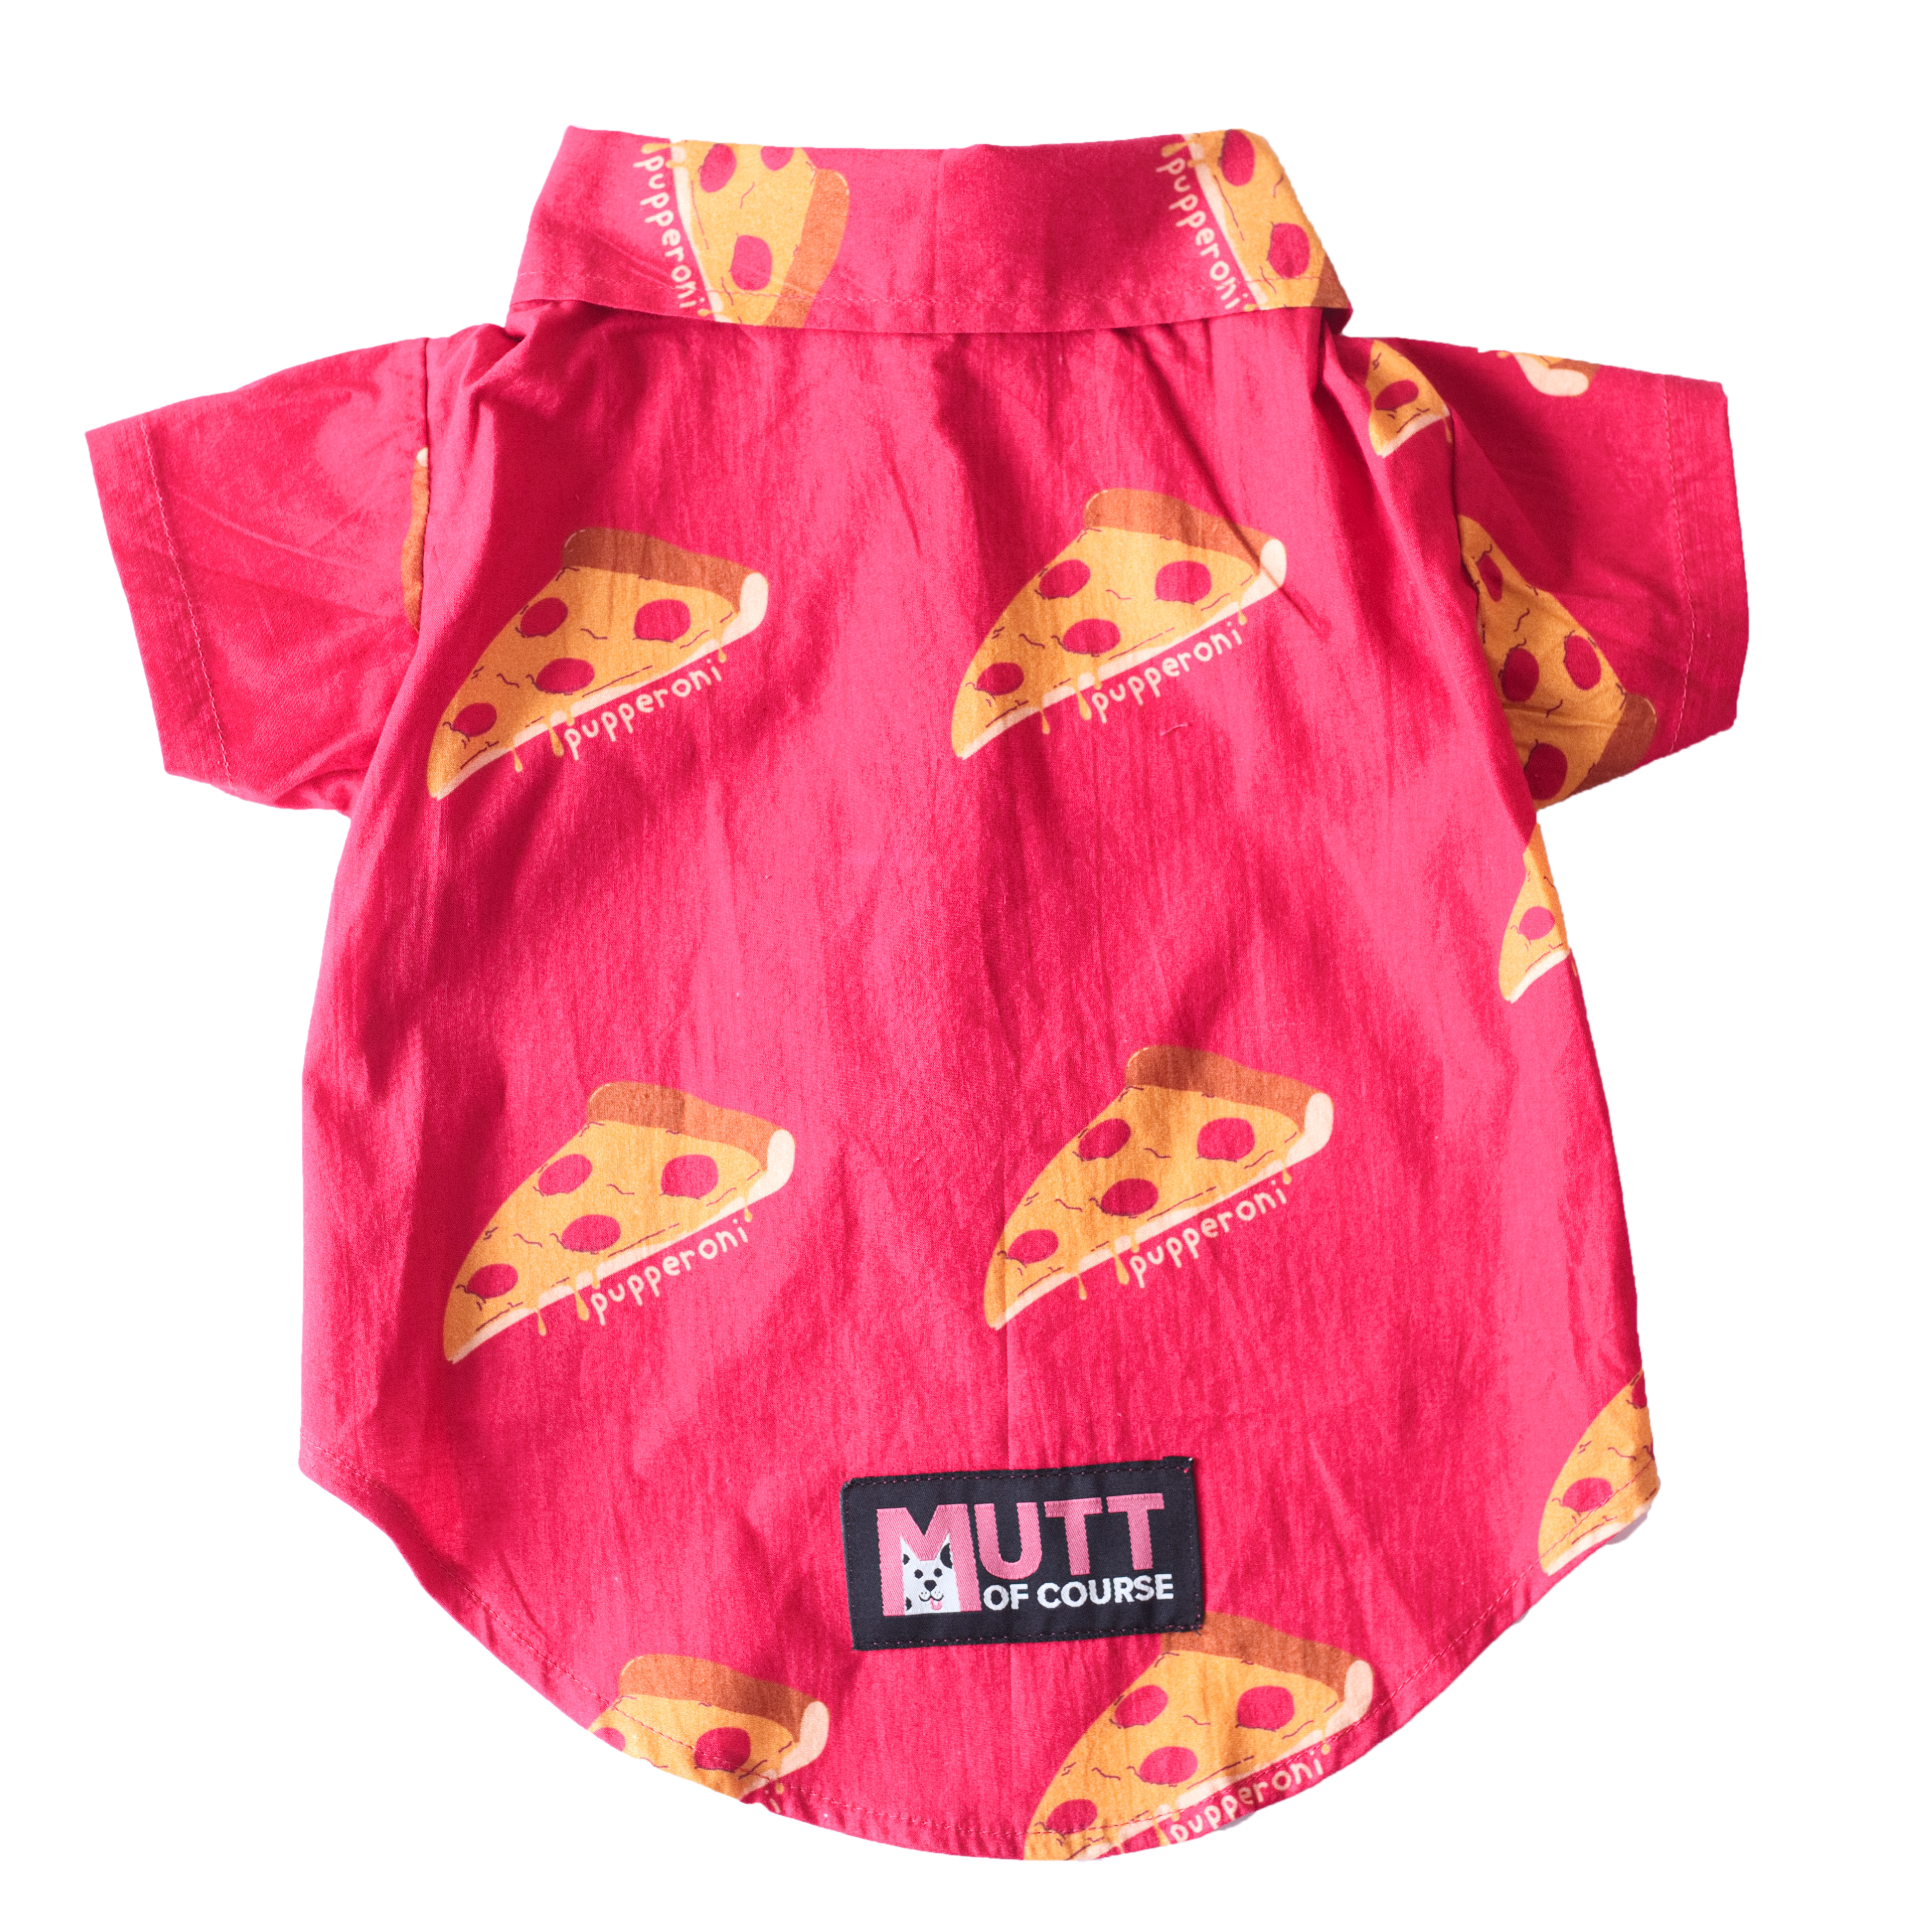 Mutt of Course Pupperoni Pizza Shirt for Dogs- 4XL